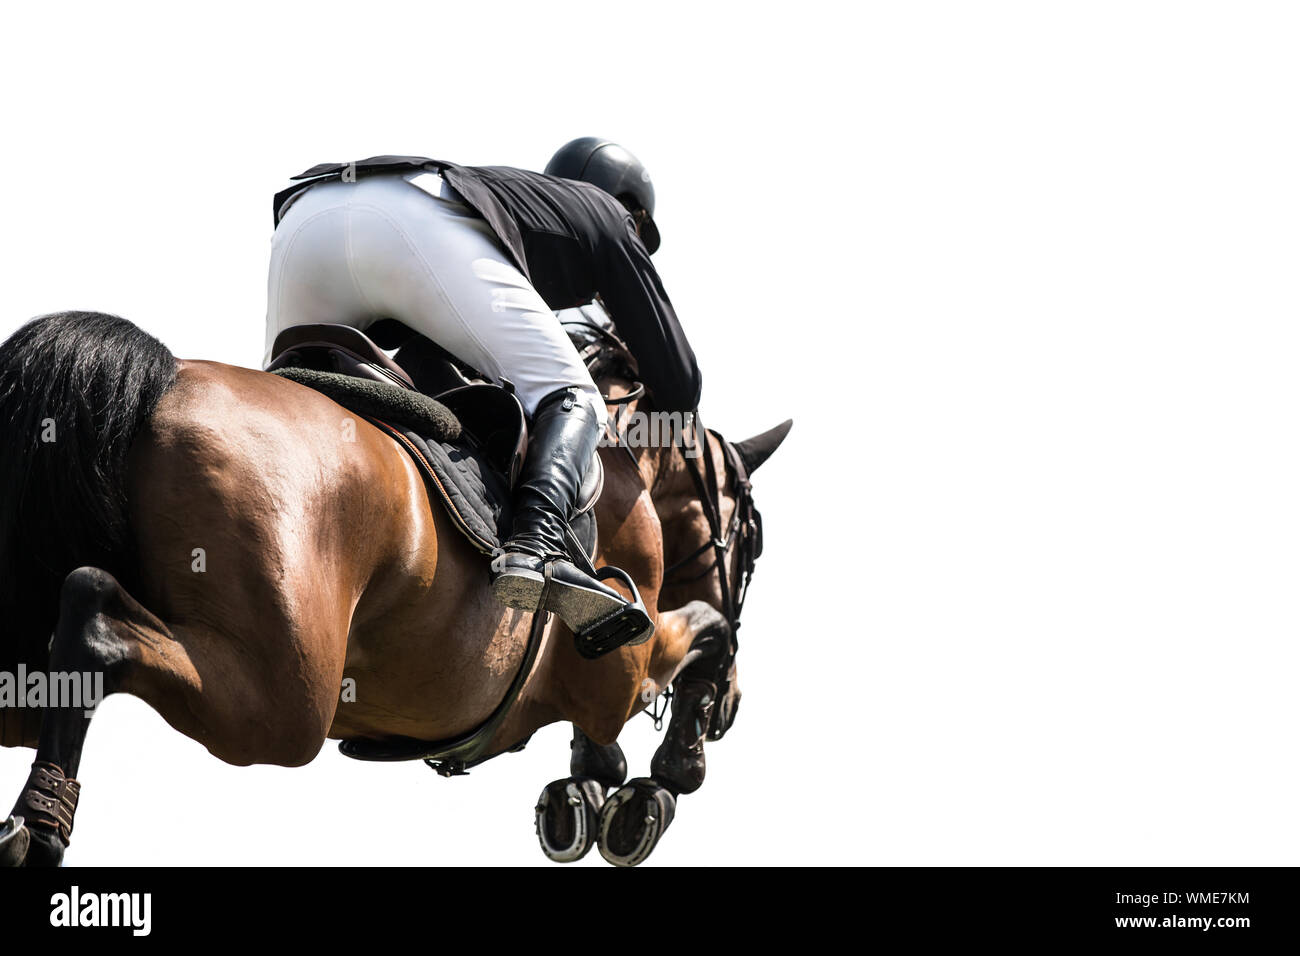 Rear View Of Person Riding Horse In Competition Stock Photo